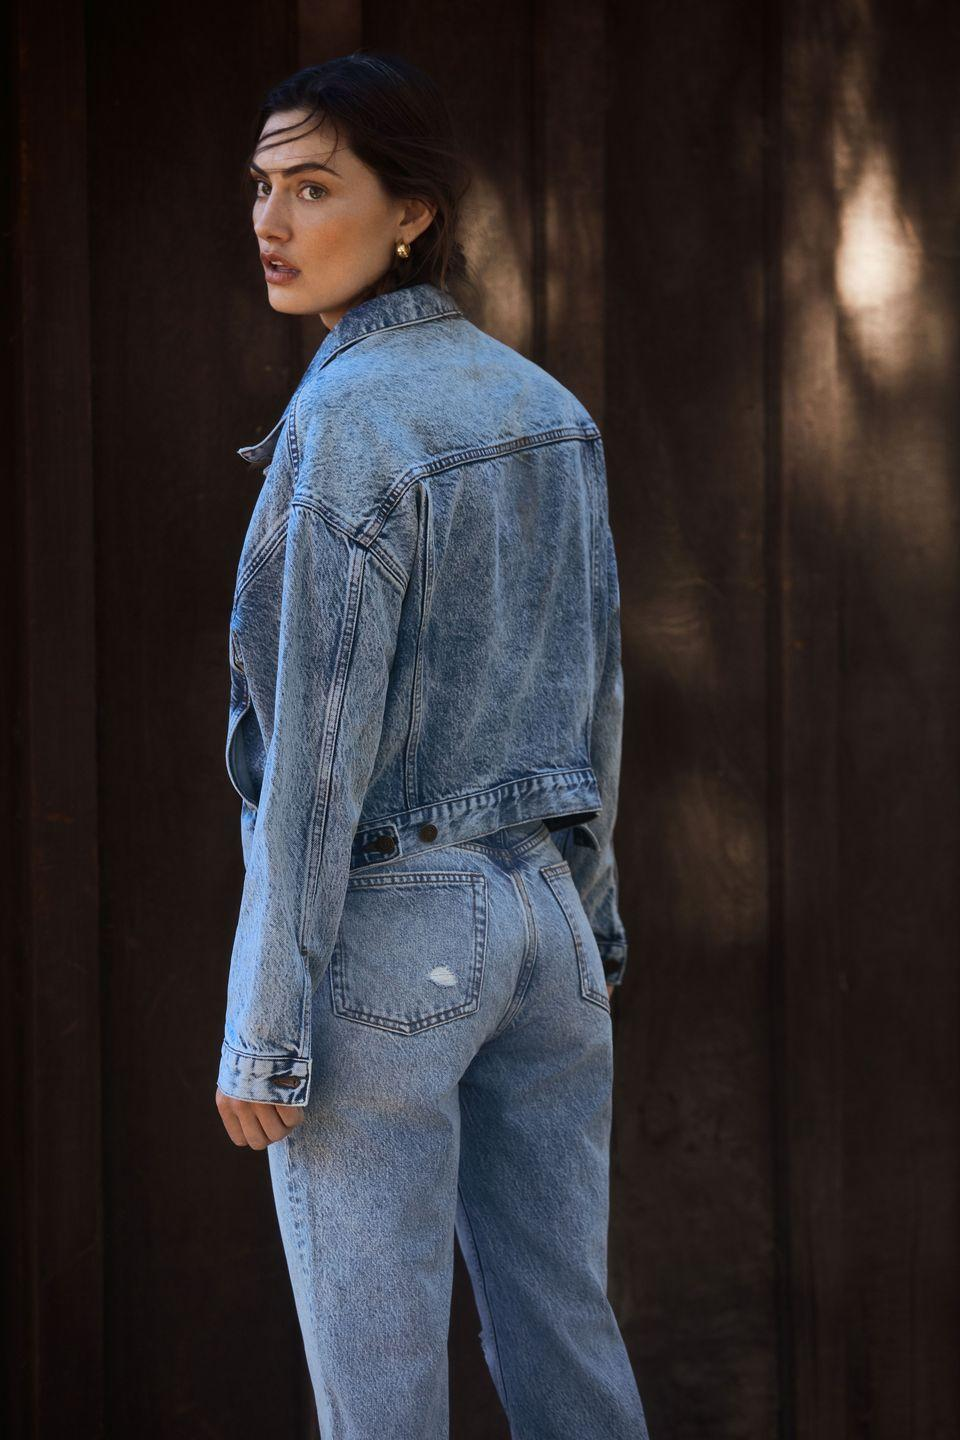 """<p><strong>Who: </strong>Reformation</p><p><strong>What: </strong>Sustainable jeans collection</p><p><strong>Where:</strong> Online at thereformation.com</p><p><strong>Why: </strong> Reformation is seeking to increase the transparency in their clothing production from start to finish, and the latest offering of denim includes <a href=""""https://urldefense.com/v3/__https://www.fibretrace.io/__;!!Ivohdkk!2oYCueQiXo7taQE7ngqoGPI__A7K8Jo5g1UcjUbqQCWtdoihIMoqGPETWklEZw$"""" rel=""""nofollow noopener"""" target=""""_blank"""" data-ylk=""""slk:FibreTrace"""" class=""""link rapid-noclick-resp"""">FibreTrace</a> technology which engrains scannable, luminescent pigments into the fabric. When scanned, customers are able to view where the textiles came from that compose the jeans they're wearing. Find out where the cotton was responsibly farmed and culled, to where the jeans were produced, and finally how they ended up on your legs. The range includes 6 styles, including some Reformation favorites, and range from $78-148.</p><p><a class=""""link rapid-noclick-resp"""" href=""""https://go.redirectingat.com?id=74968X1596630&url=https%3A%2F%2Fwww.thereformation.com%2F&sref=https%3A%2F%2Fwww.elle.com%2Ffashion%2Fshopping%2Fg35685914%2Fmarch-2021-fashion-collaborations-launches%2F"""" rel=""""nofollow noopener"""" target=""""_blank"""" data-ylk=""""slk:SHOP NOW"""">SHOP NOW</a><br><strong><br></strong></p>"""